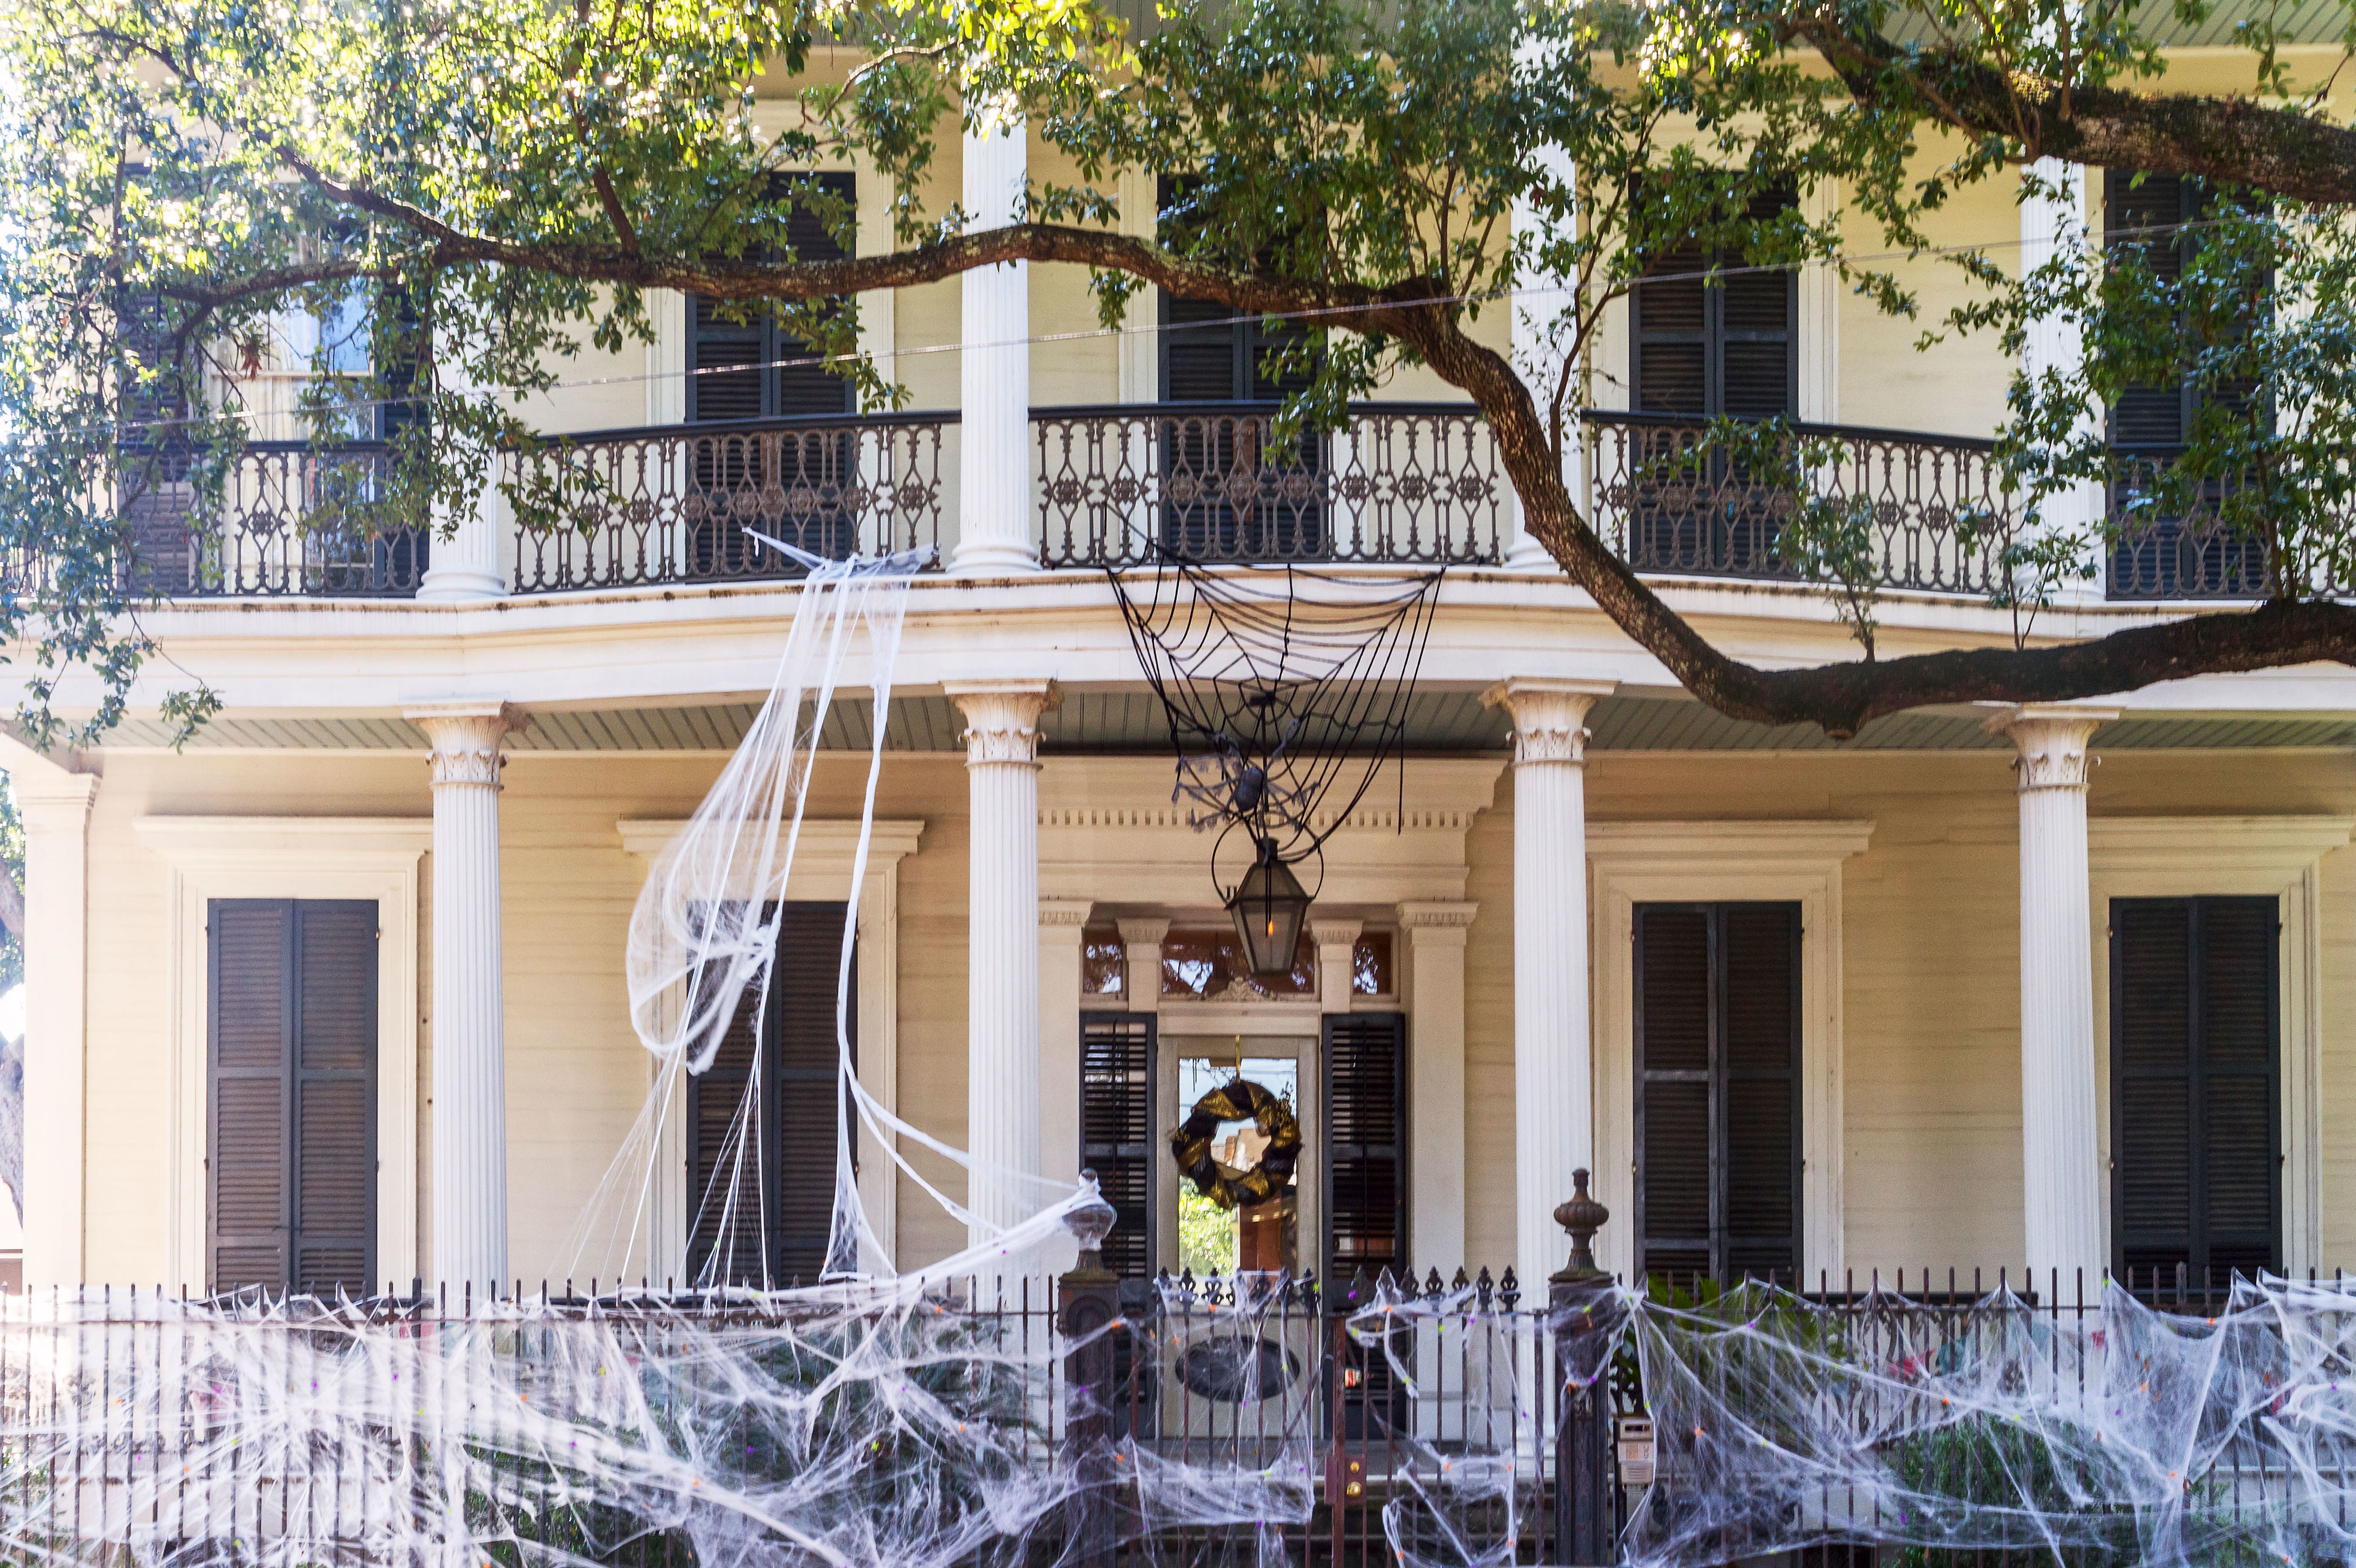 Why No City Celebrates Halloween Quite Like New Orleans